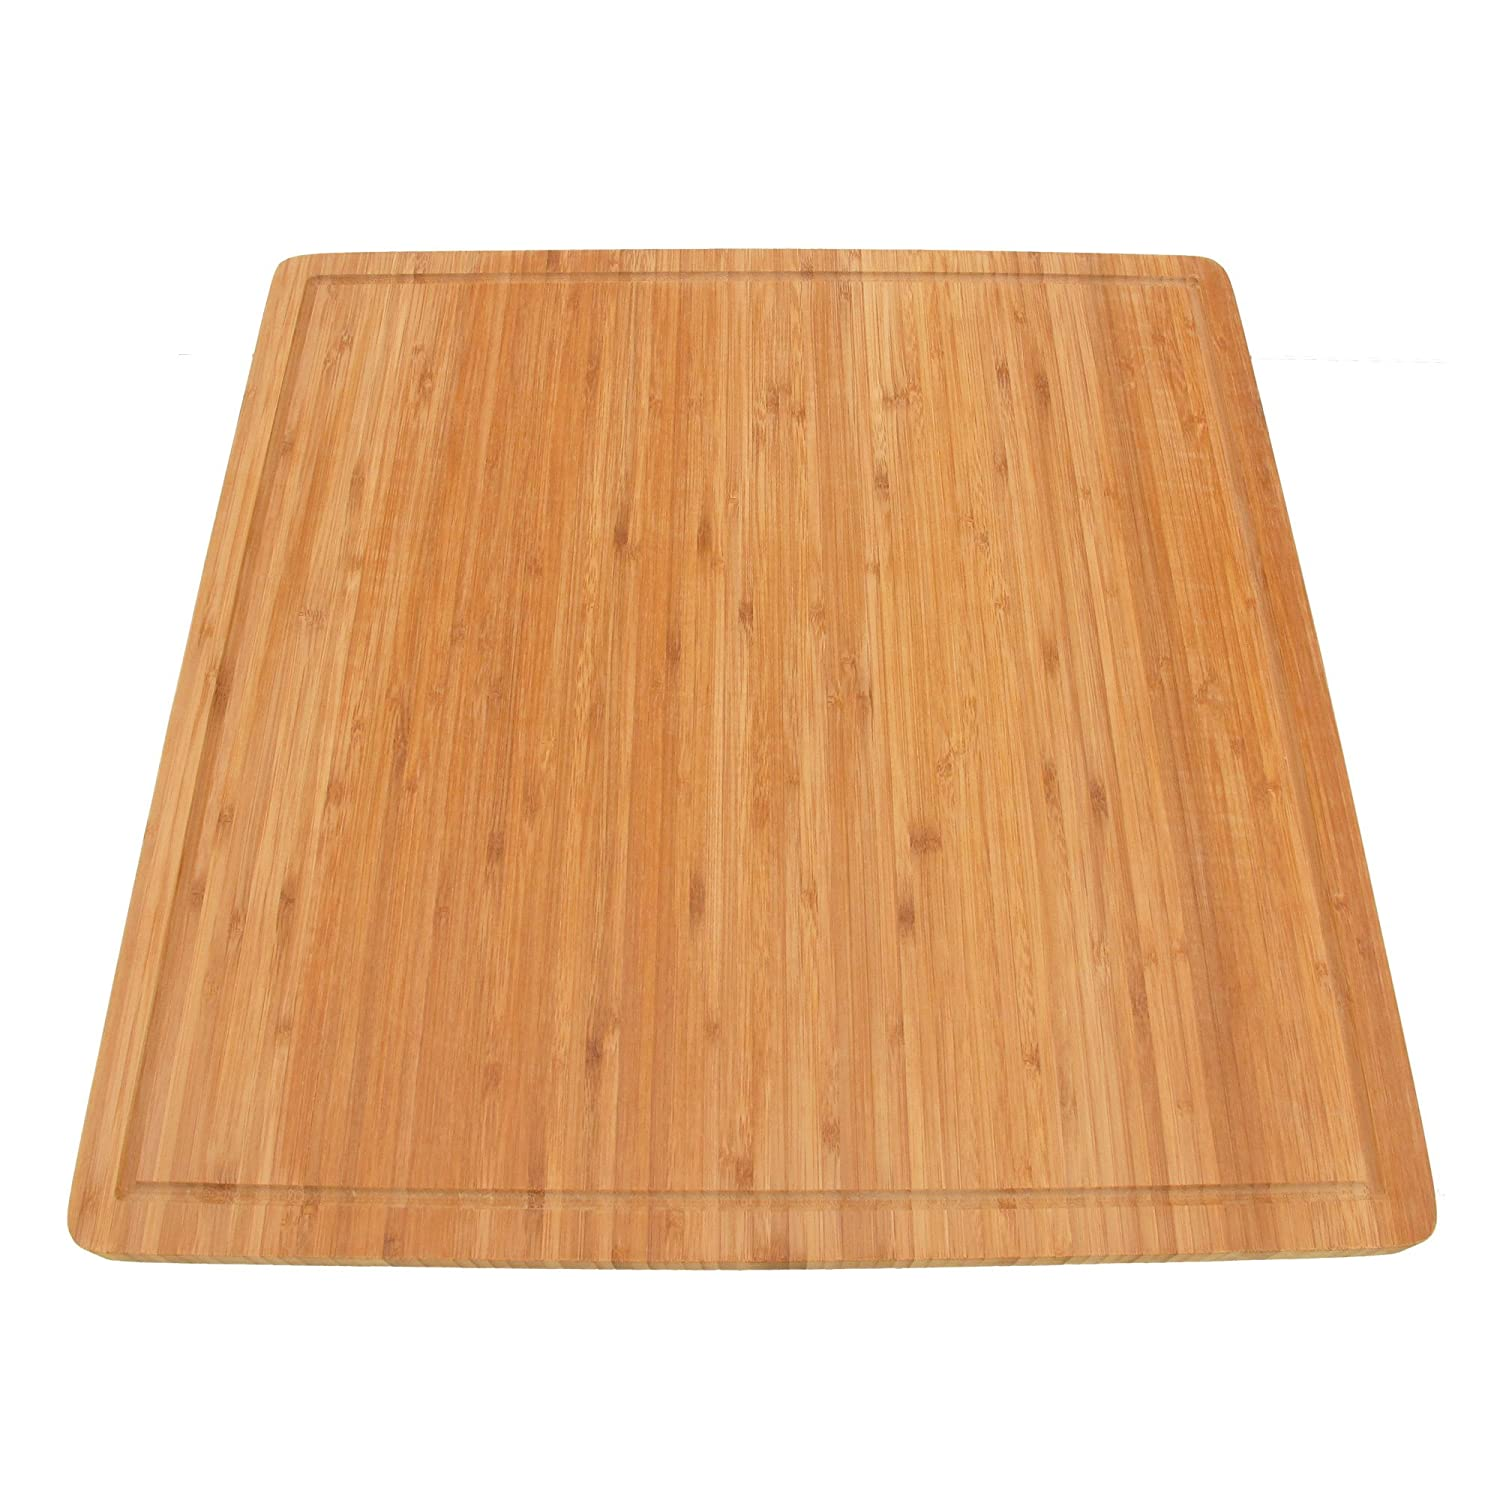 premium bamboo cutting board wood large small thick handle options ebay. Black Bedroom Furniture Sets. Home Design Ideas